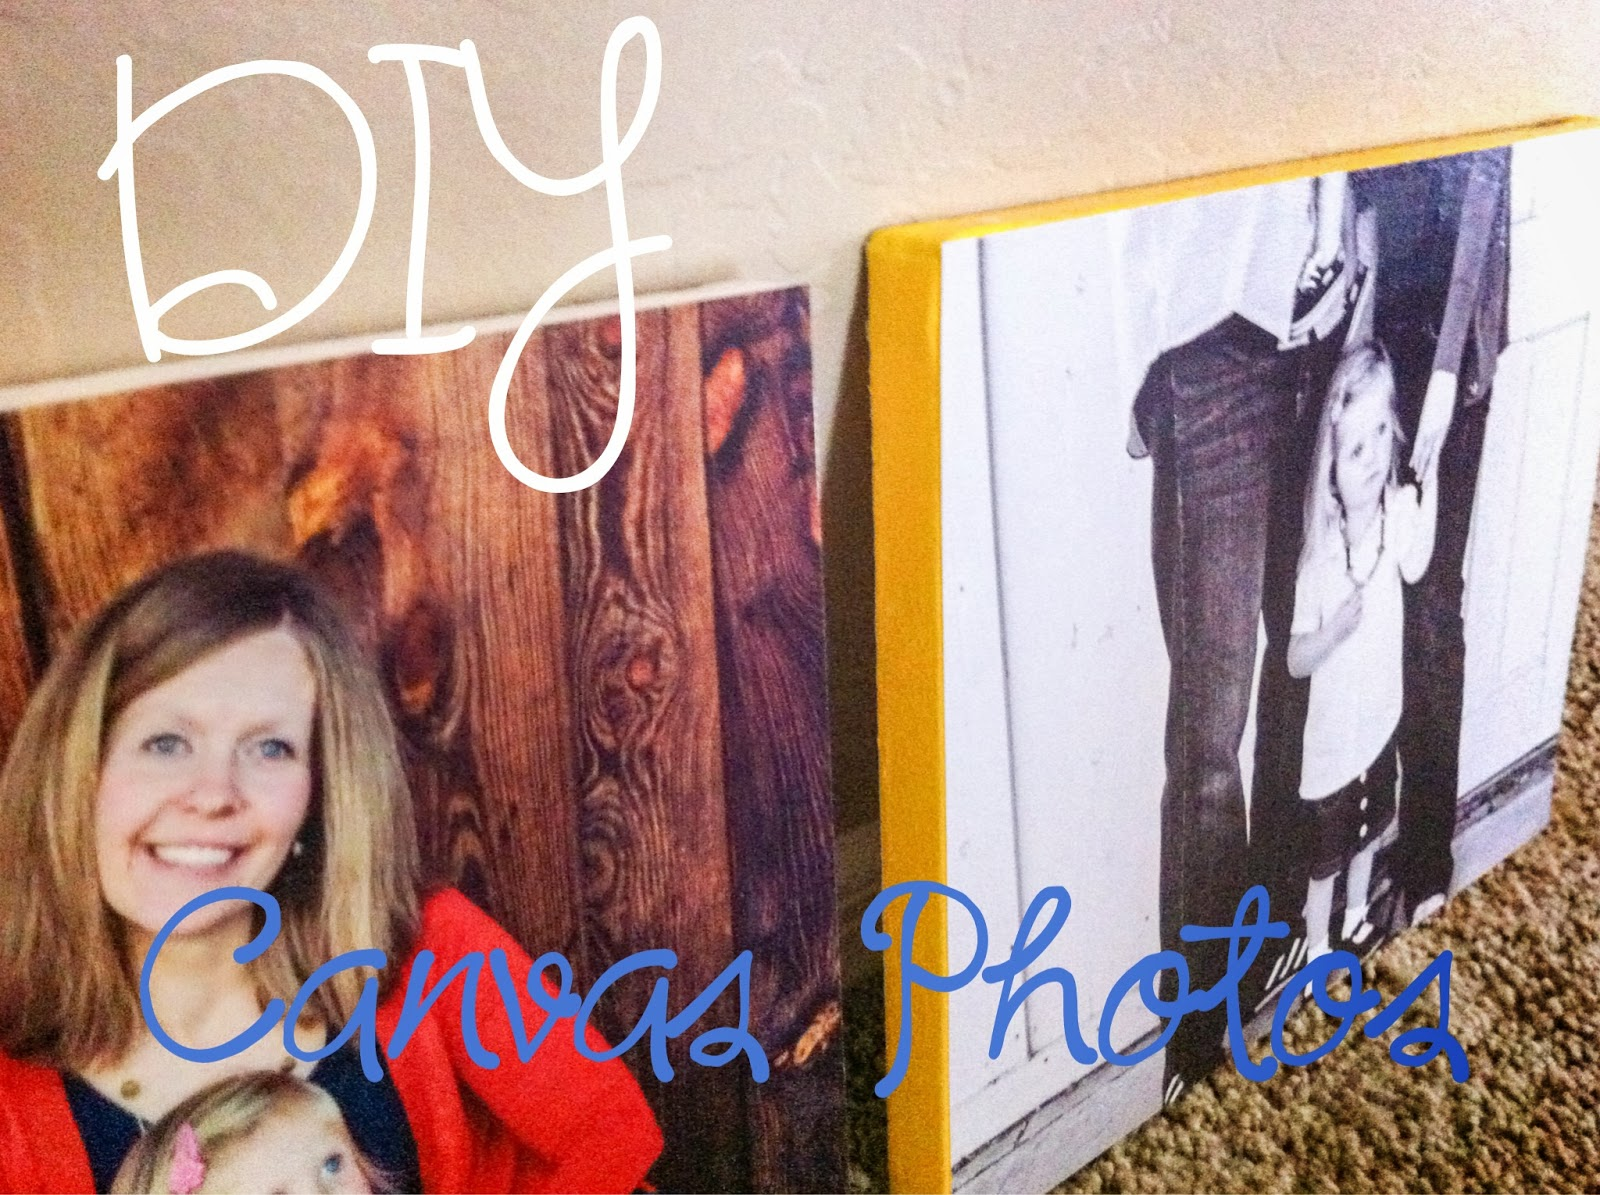 DIY Canvas Photos. Transfer photo to canvas using Mod Podge- Alohamora http://alohamoraopenabook.blogspot.com/